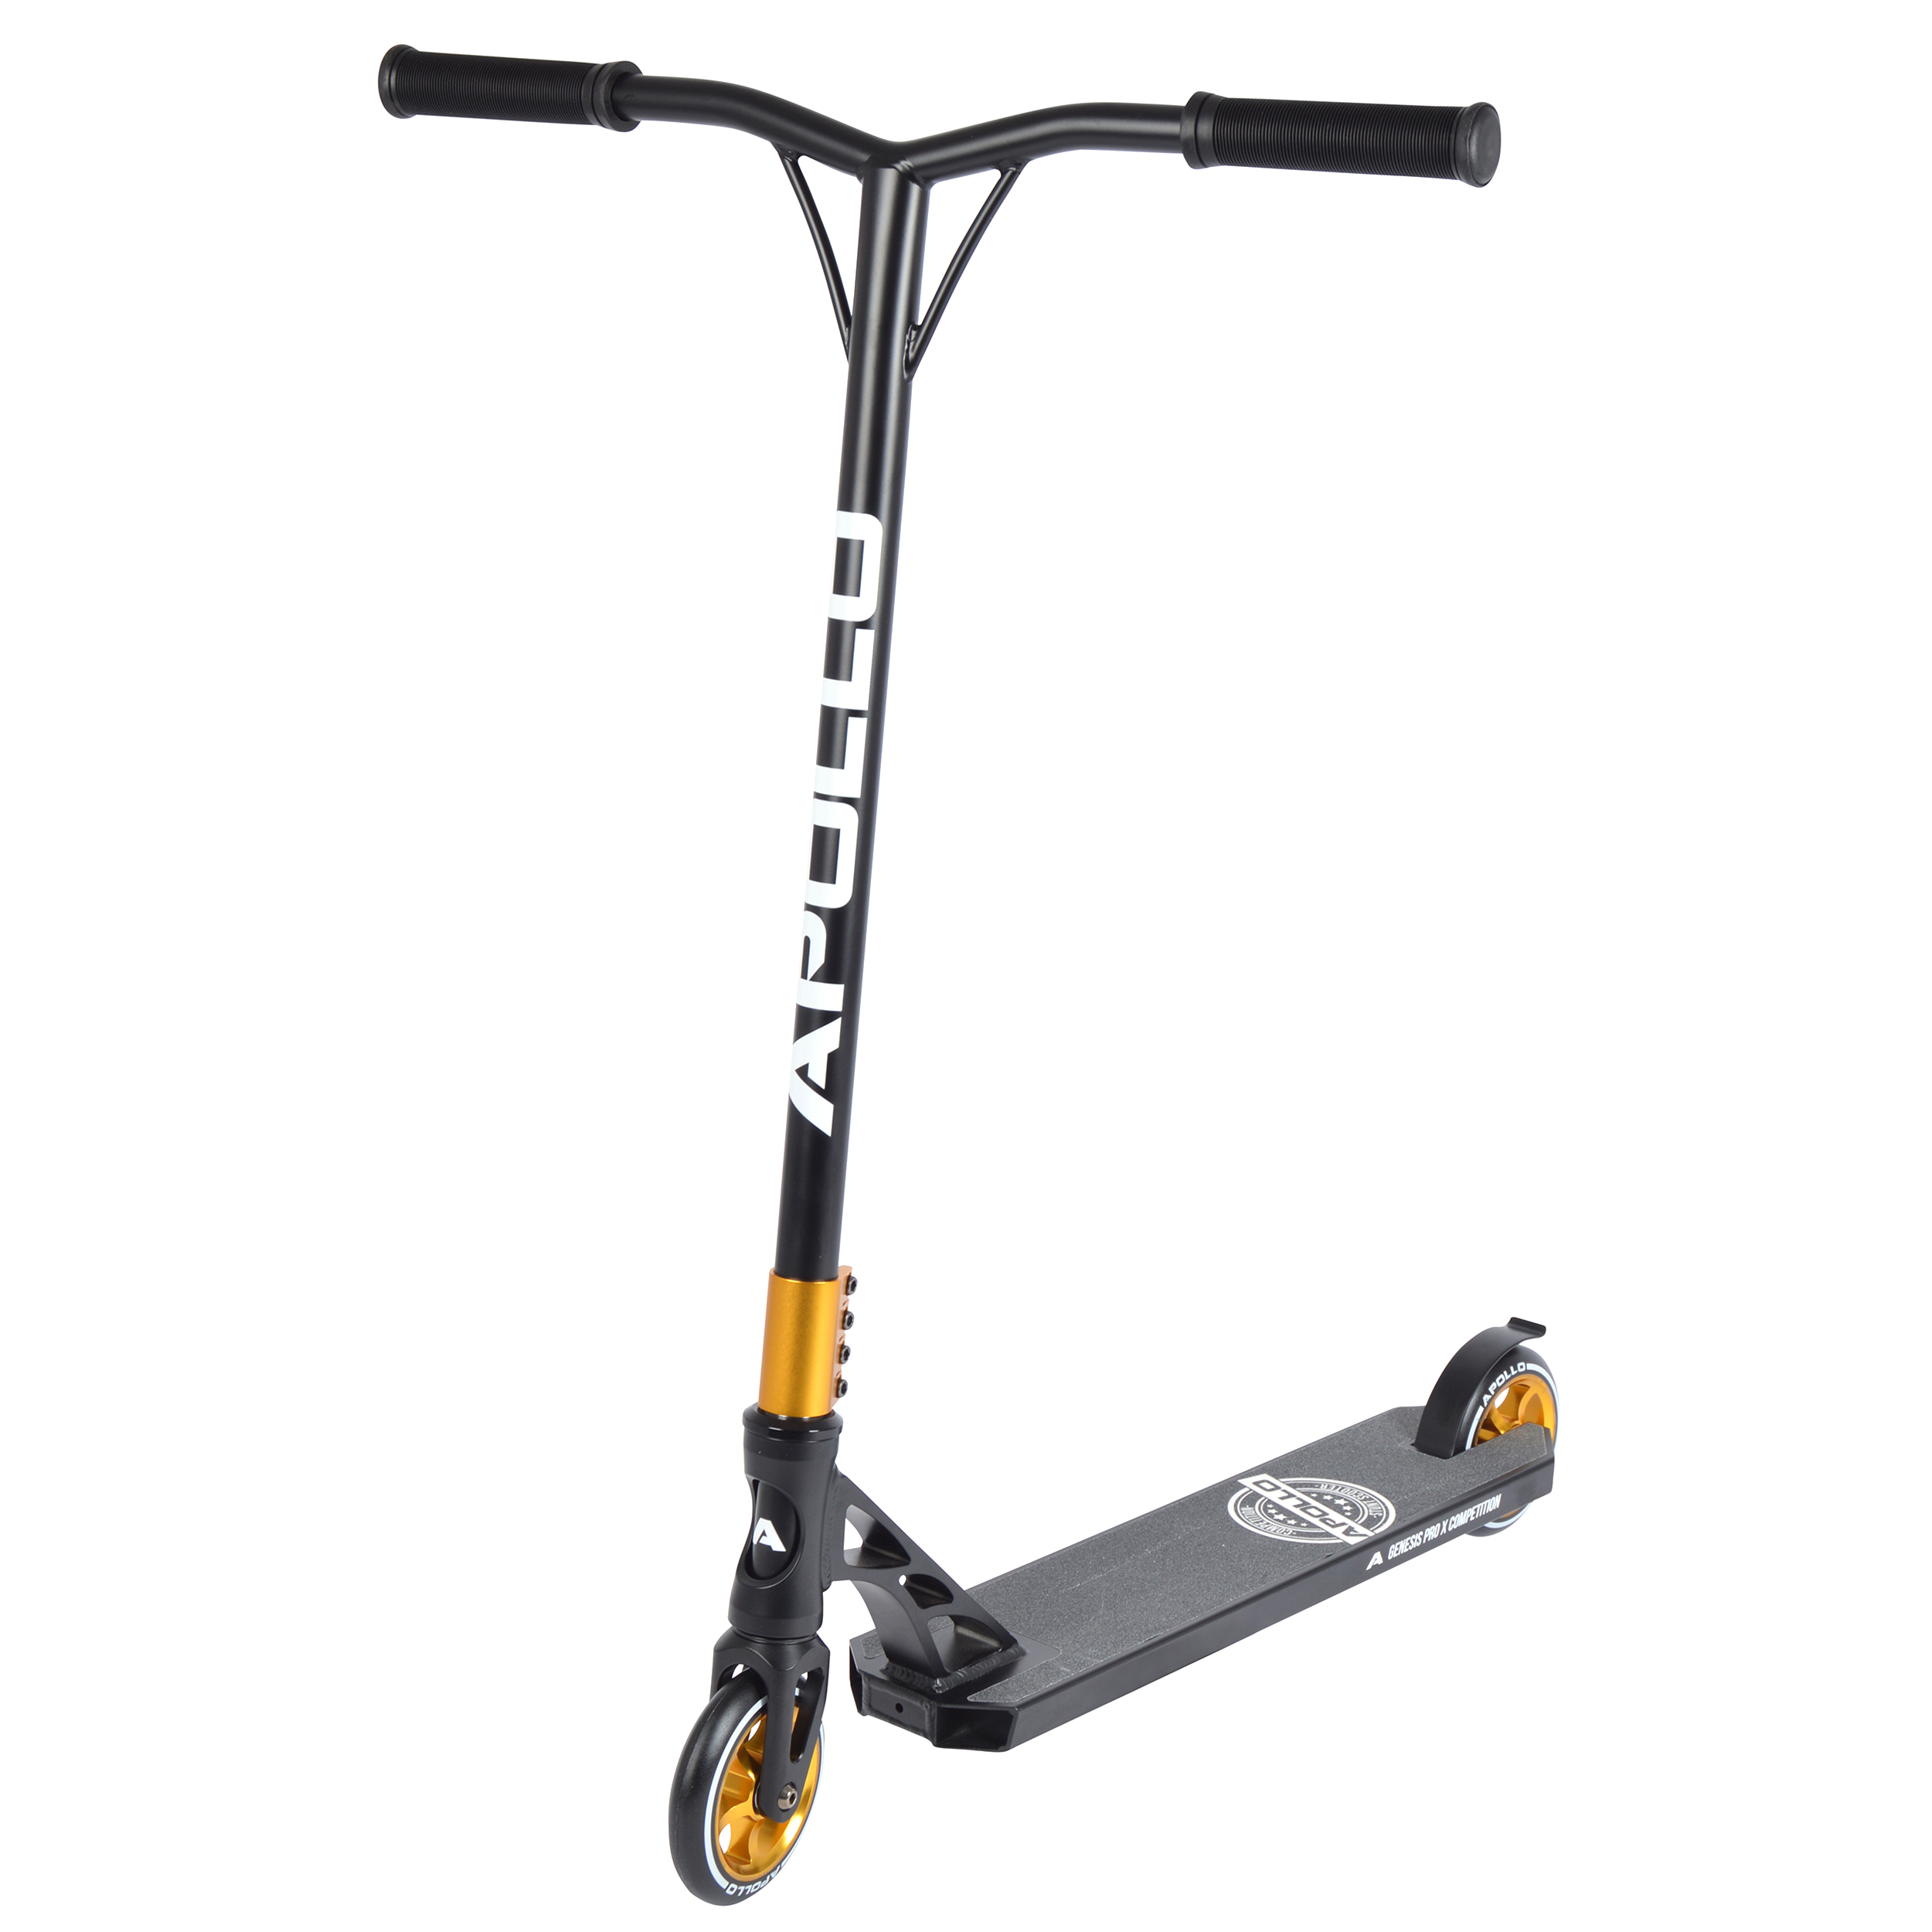 Stunt Scooter - Genesis Pro X Competition - Black/Gold